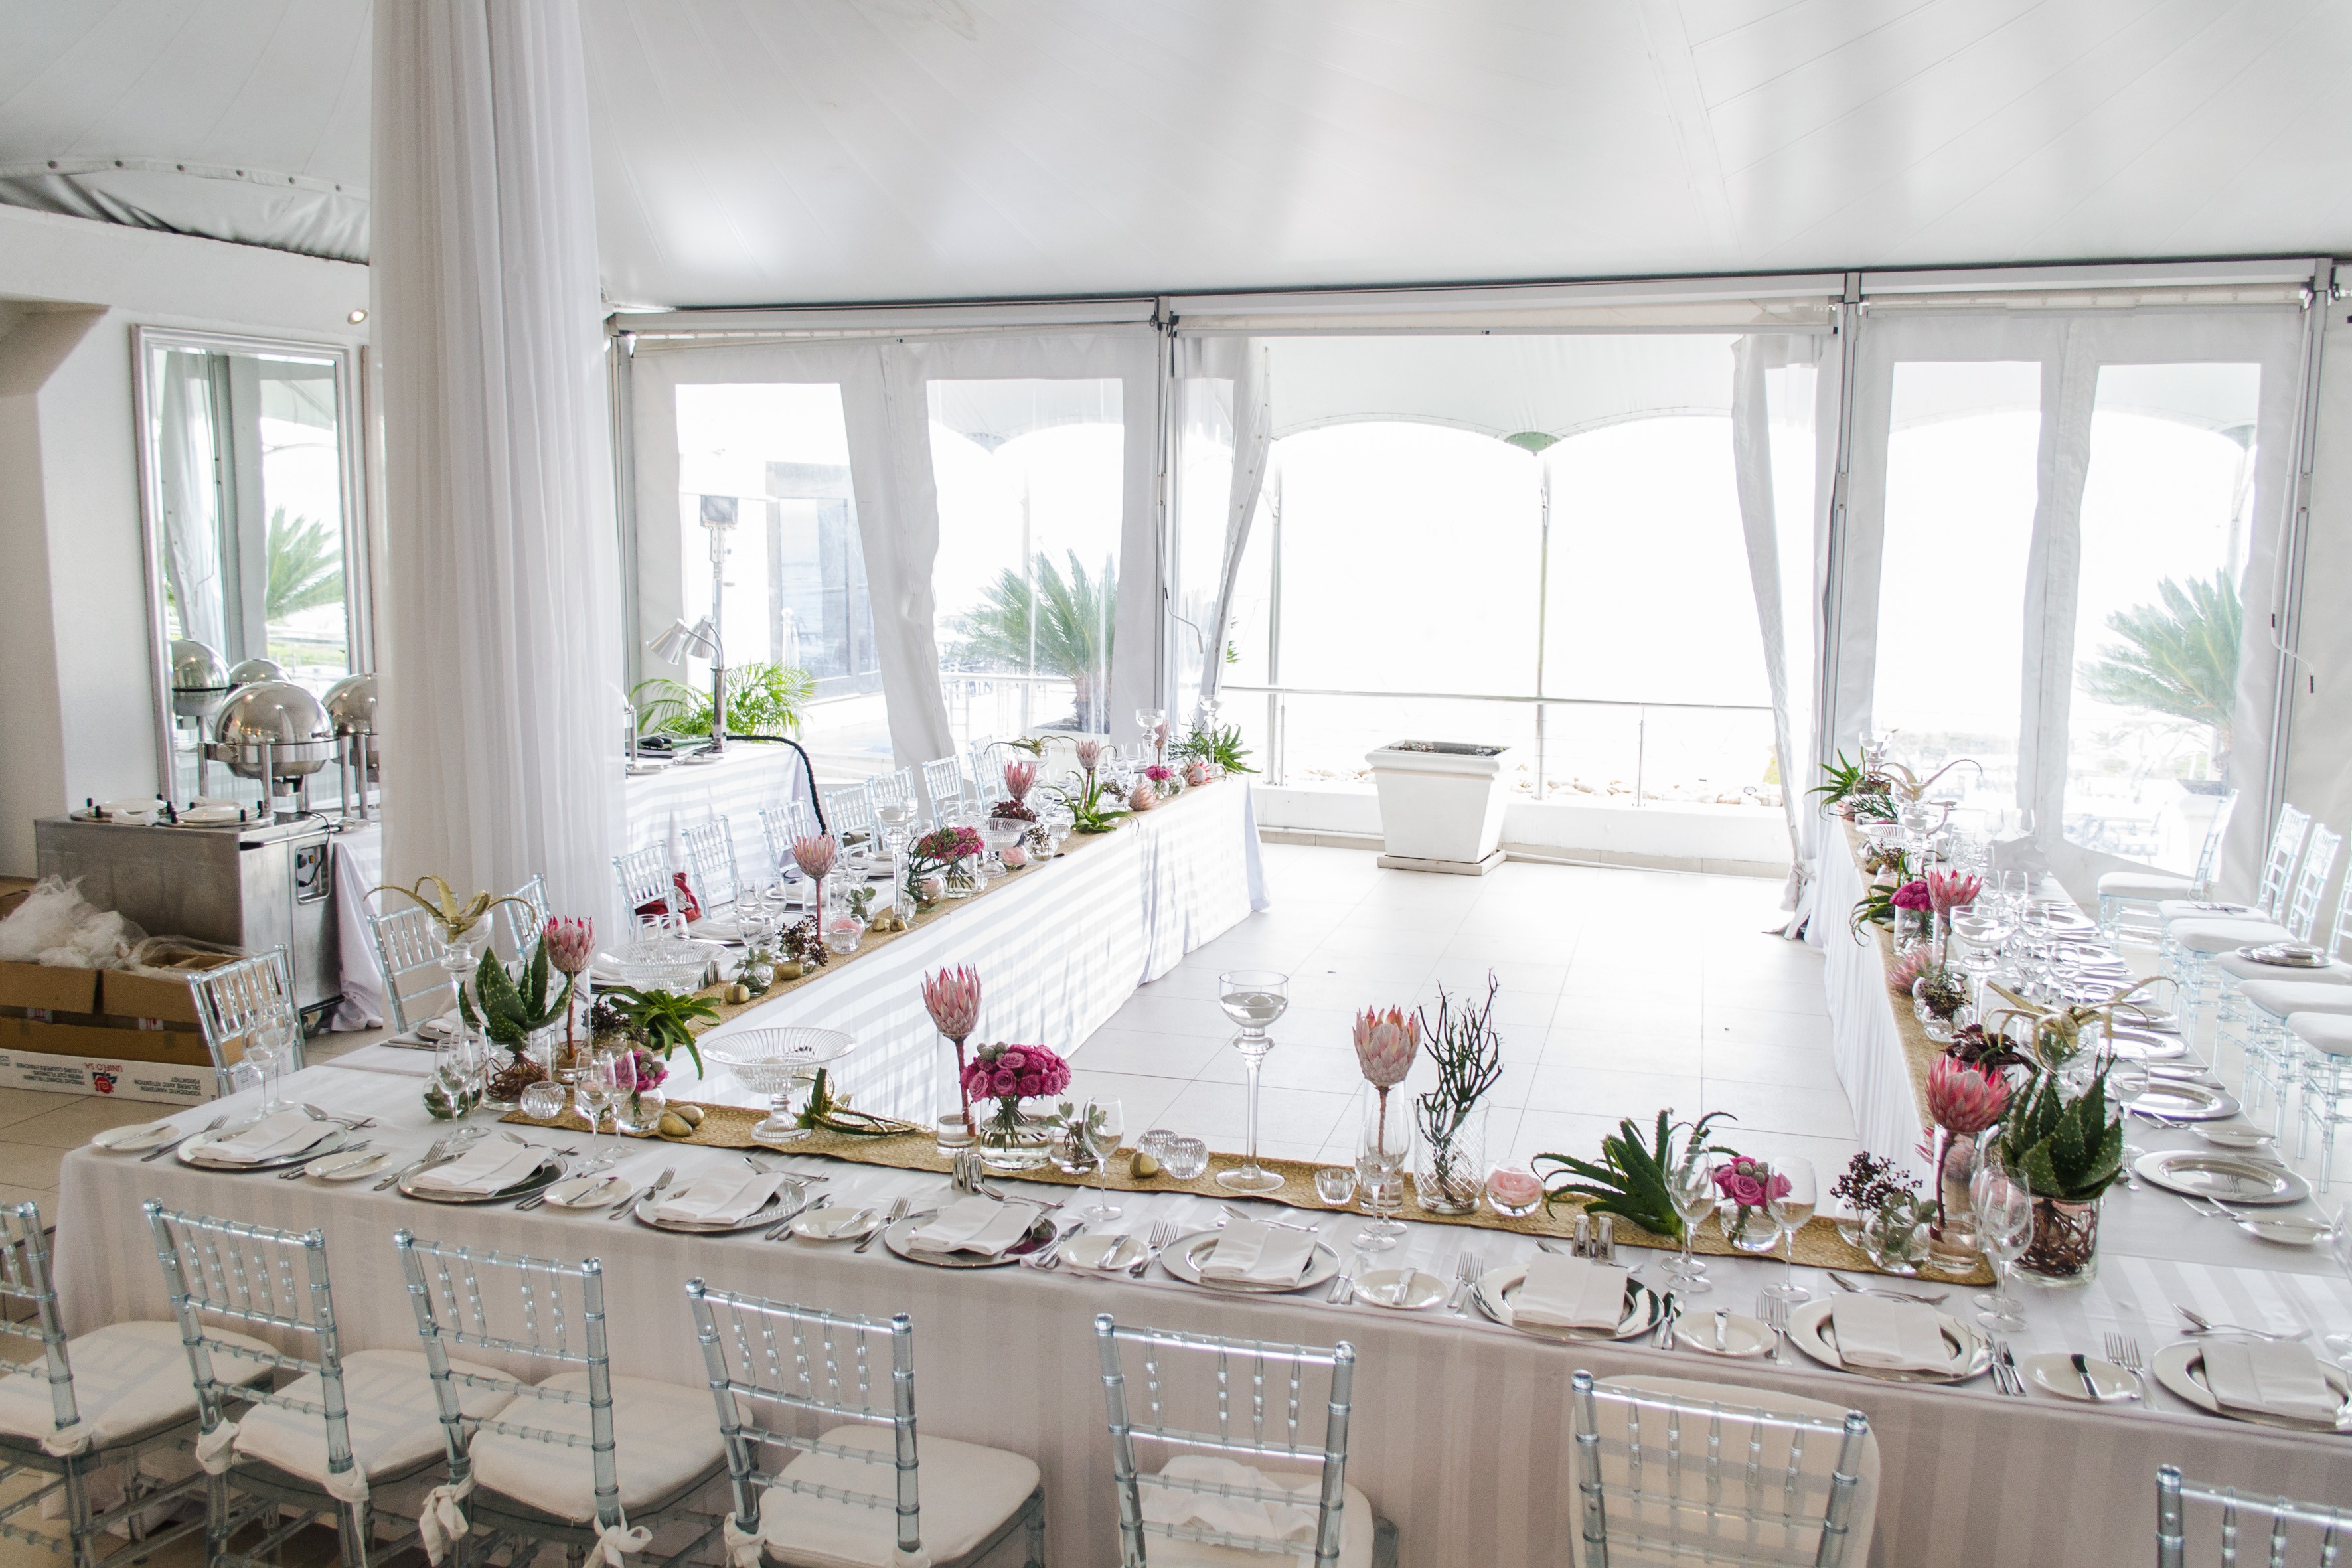 lux-african-wedding-decor-cape-town_12 - Sorrento Events